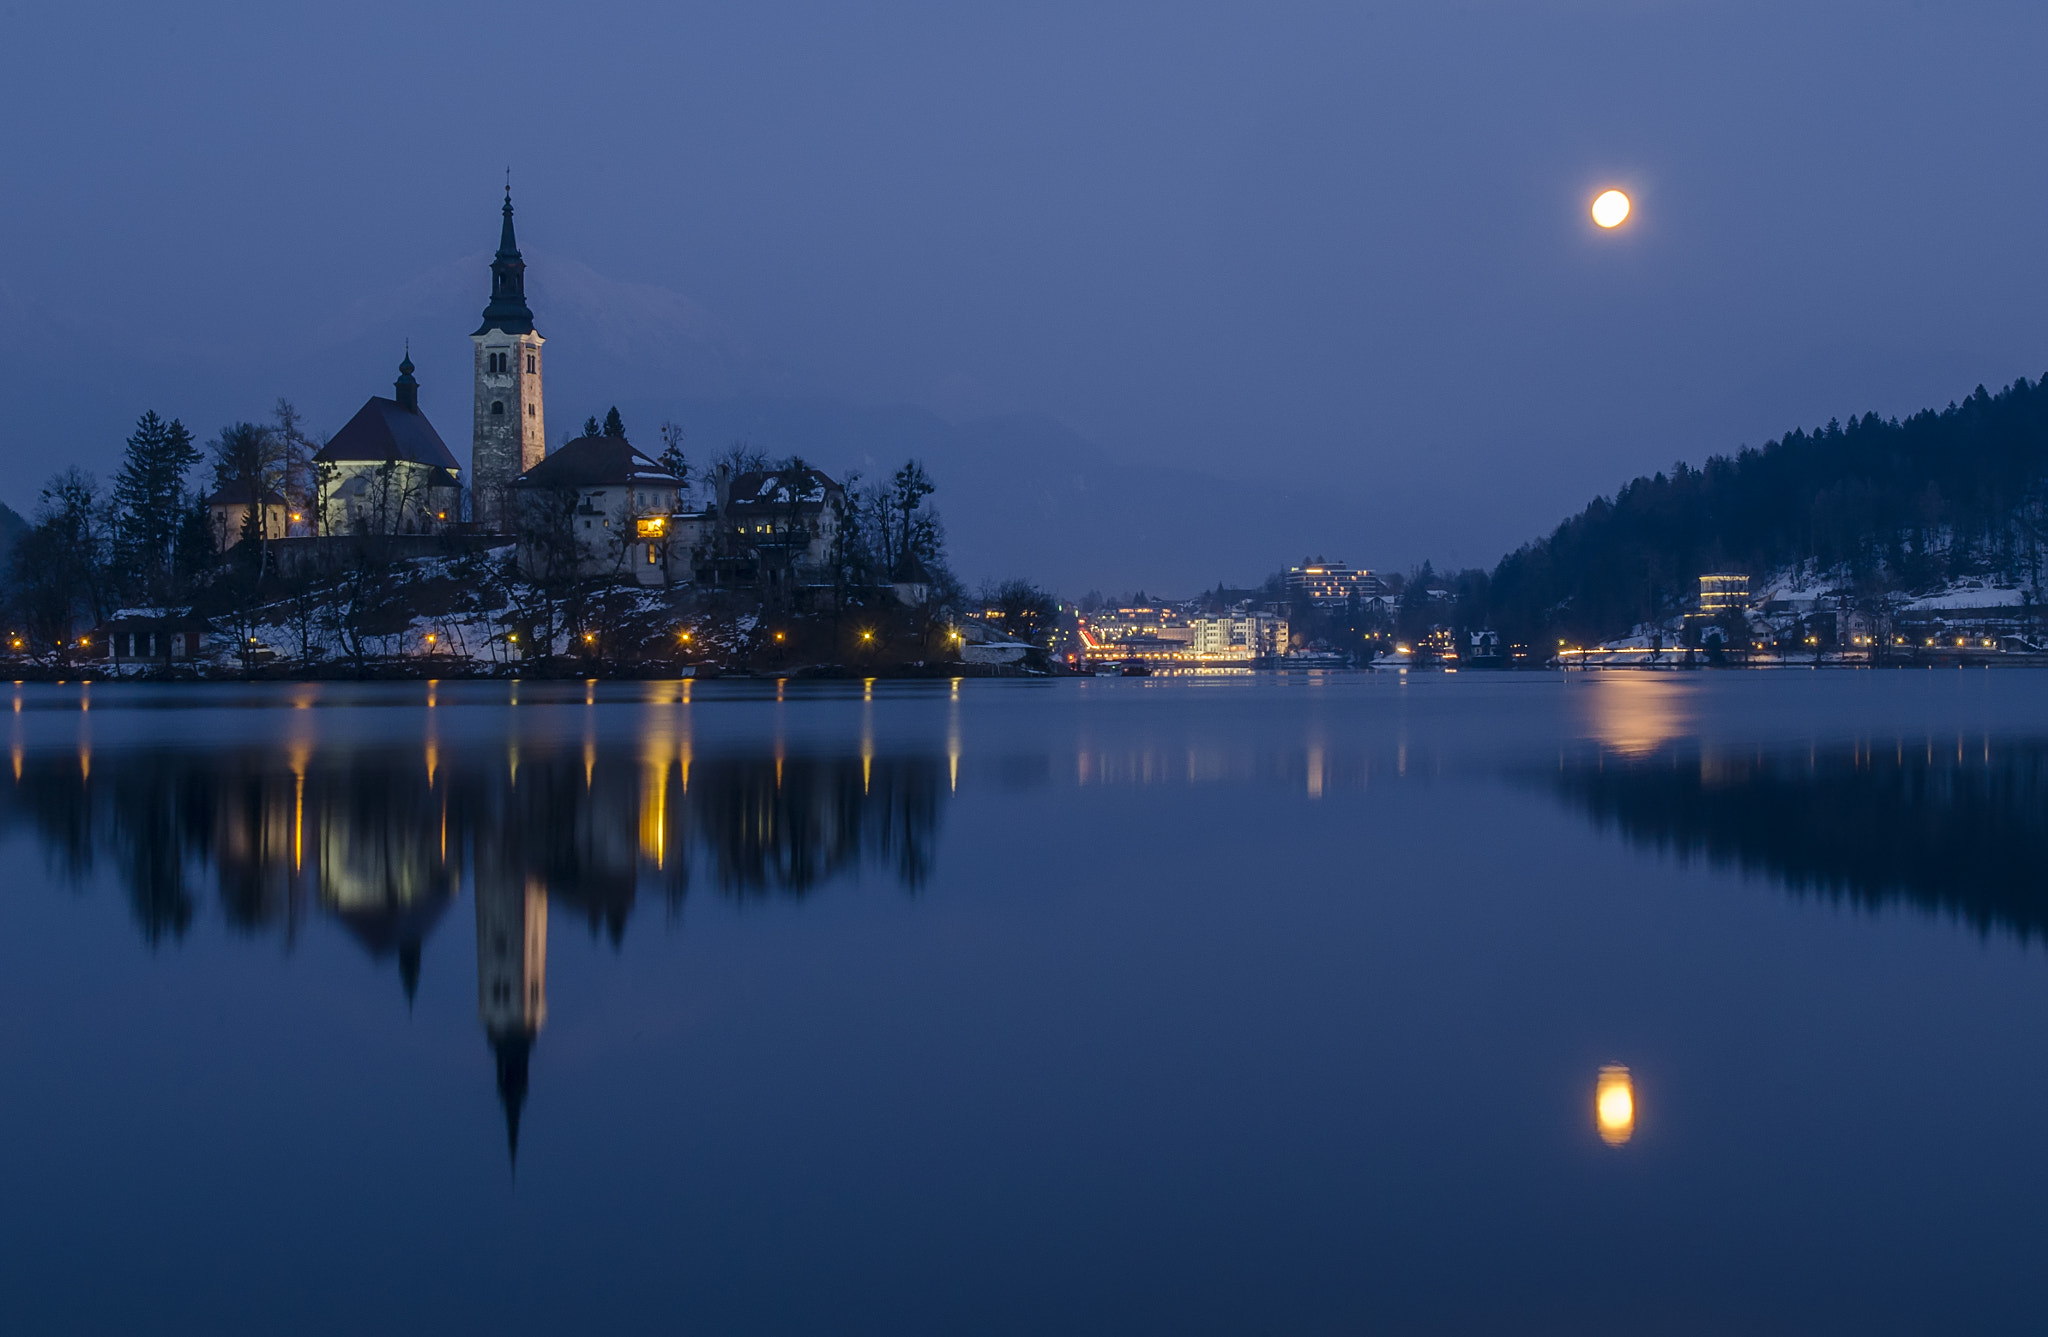 Photograph Moonlighted Bled by Csilla Zelko on 500px